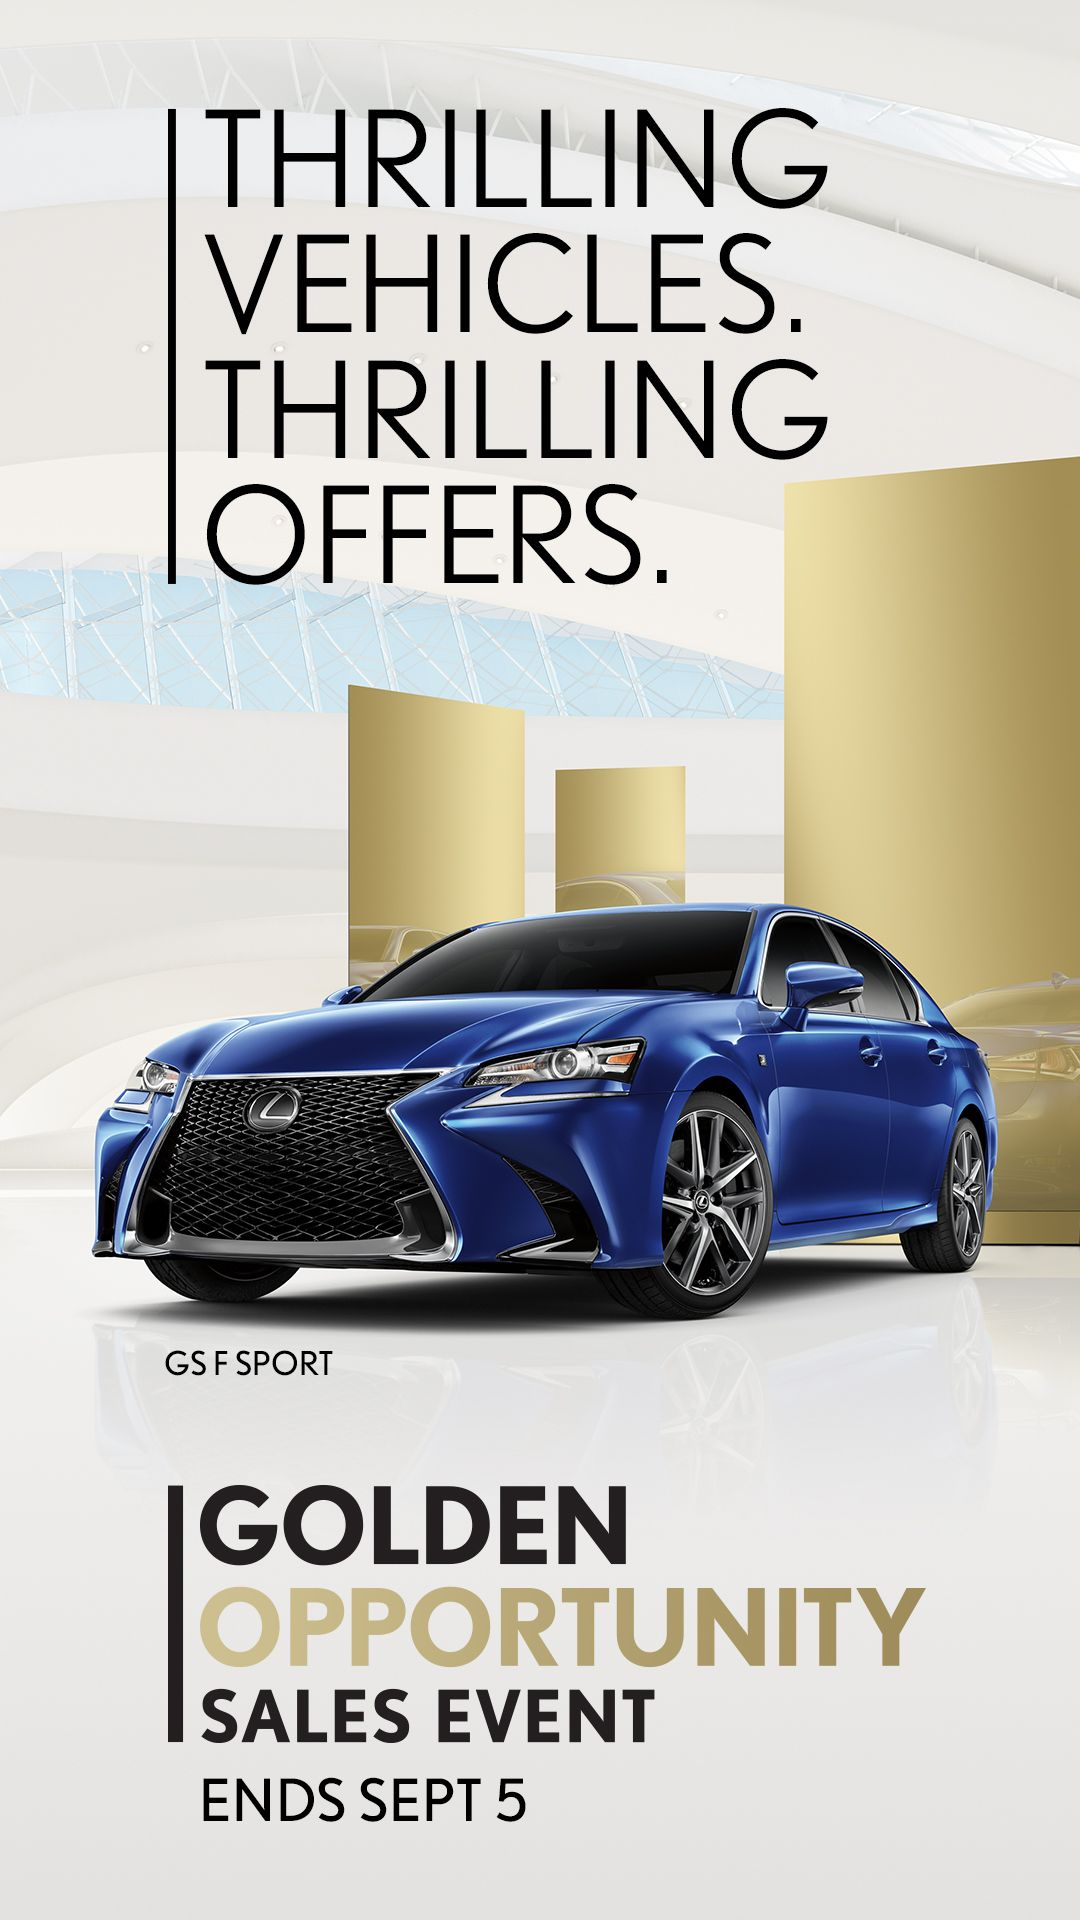 Golden Opportunity Sales Event Going On Now At Lexus Dominion